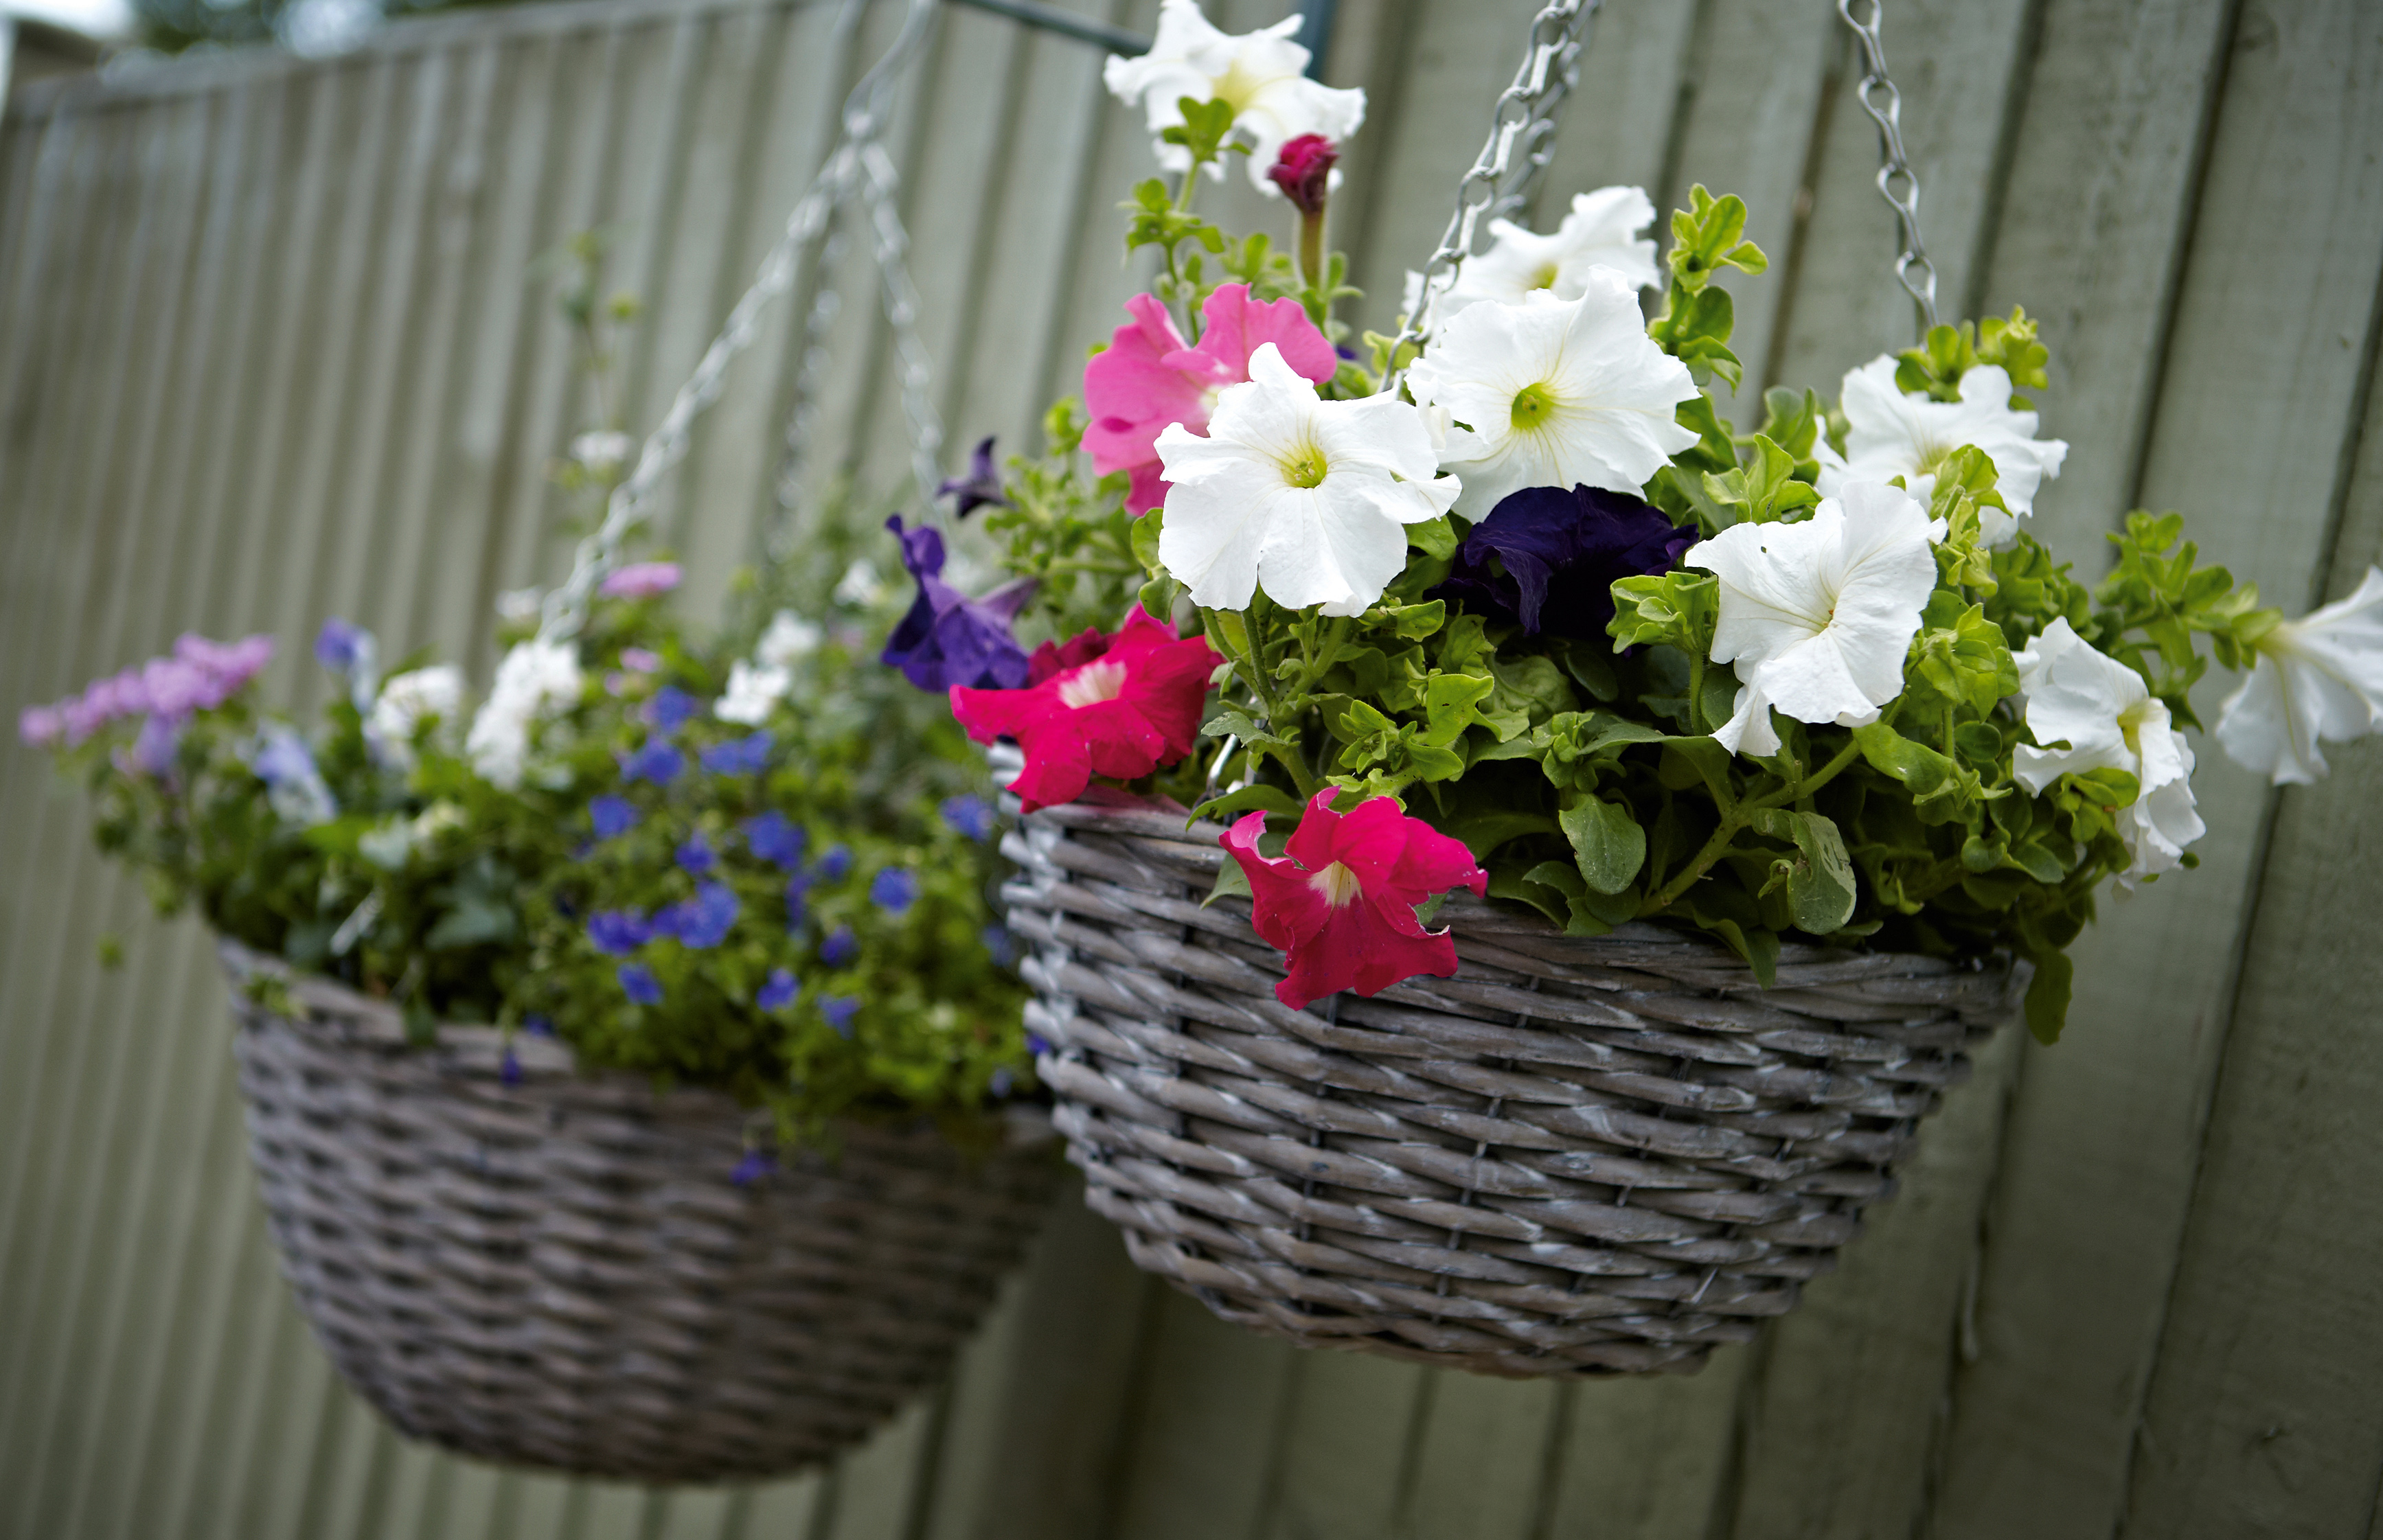 ss13_016_017_Hanging_Baskets1354